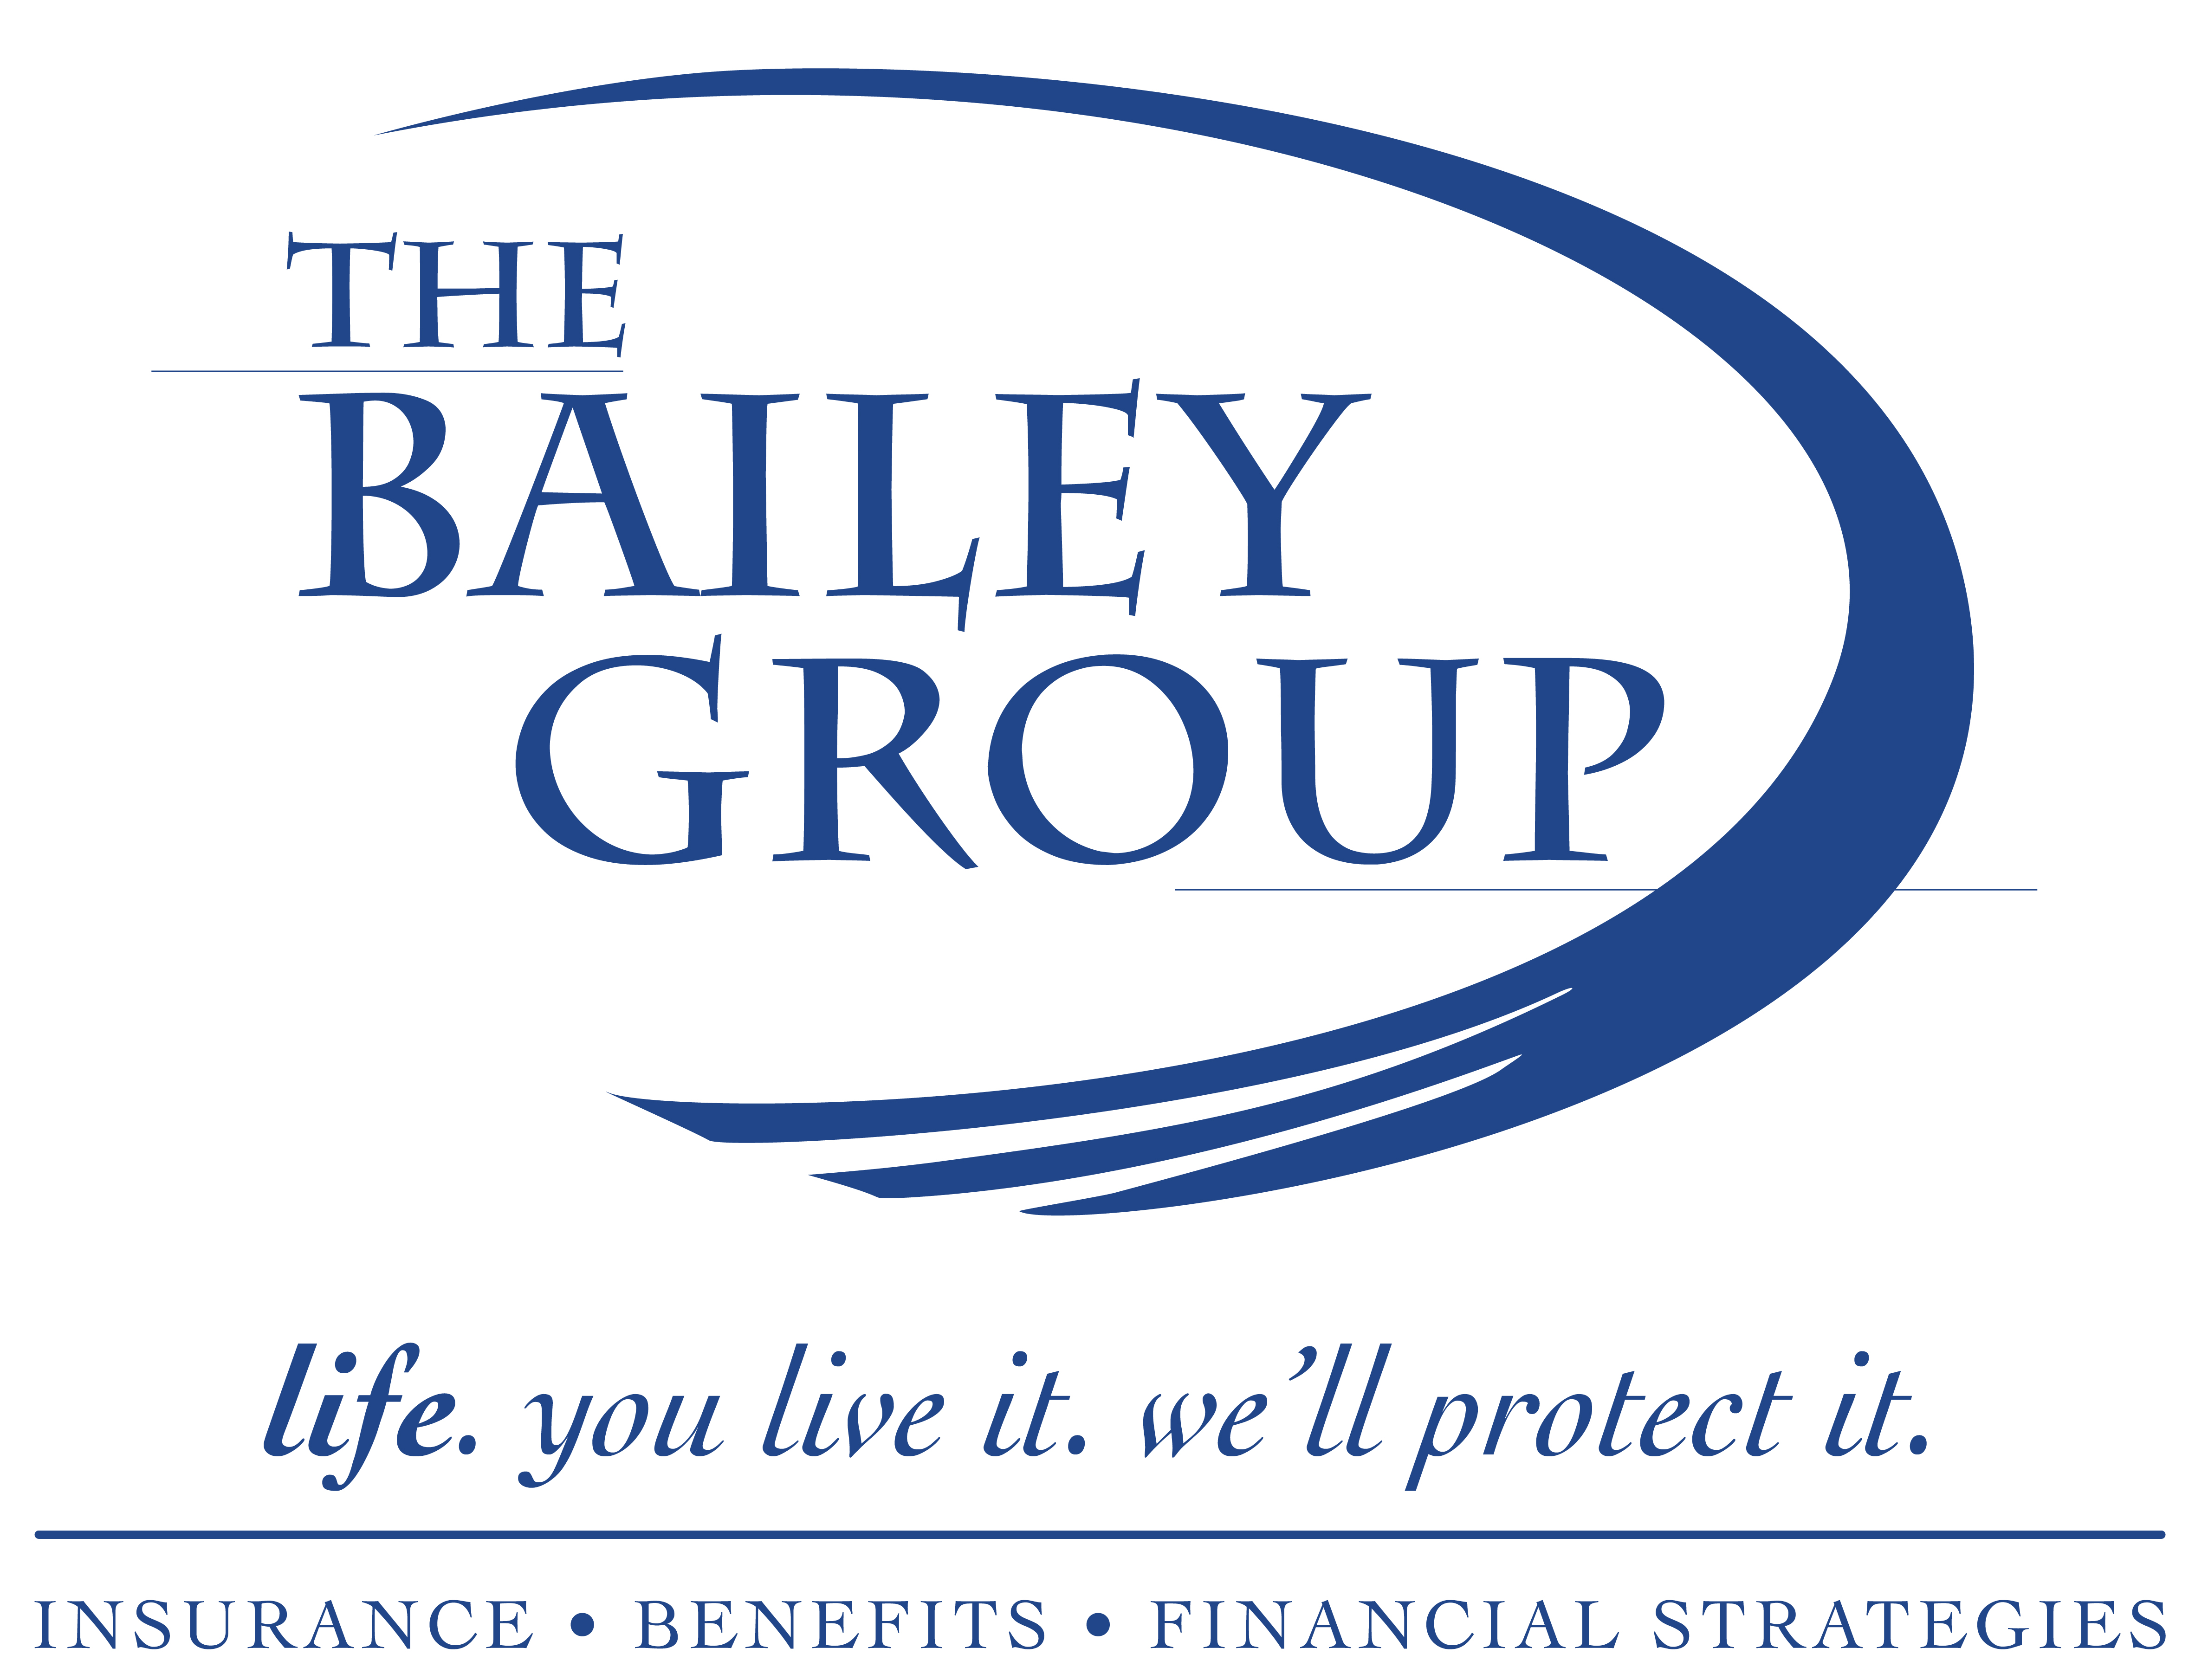 The Bailey Group